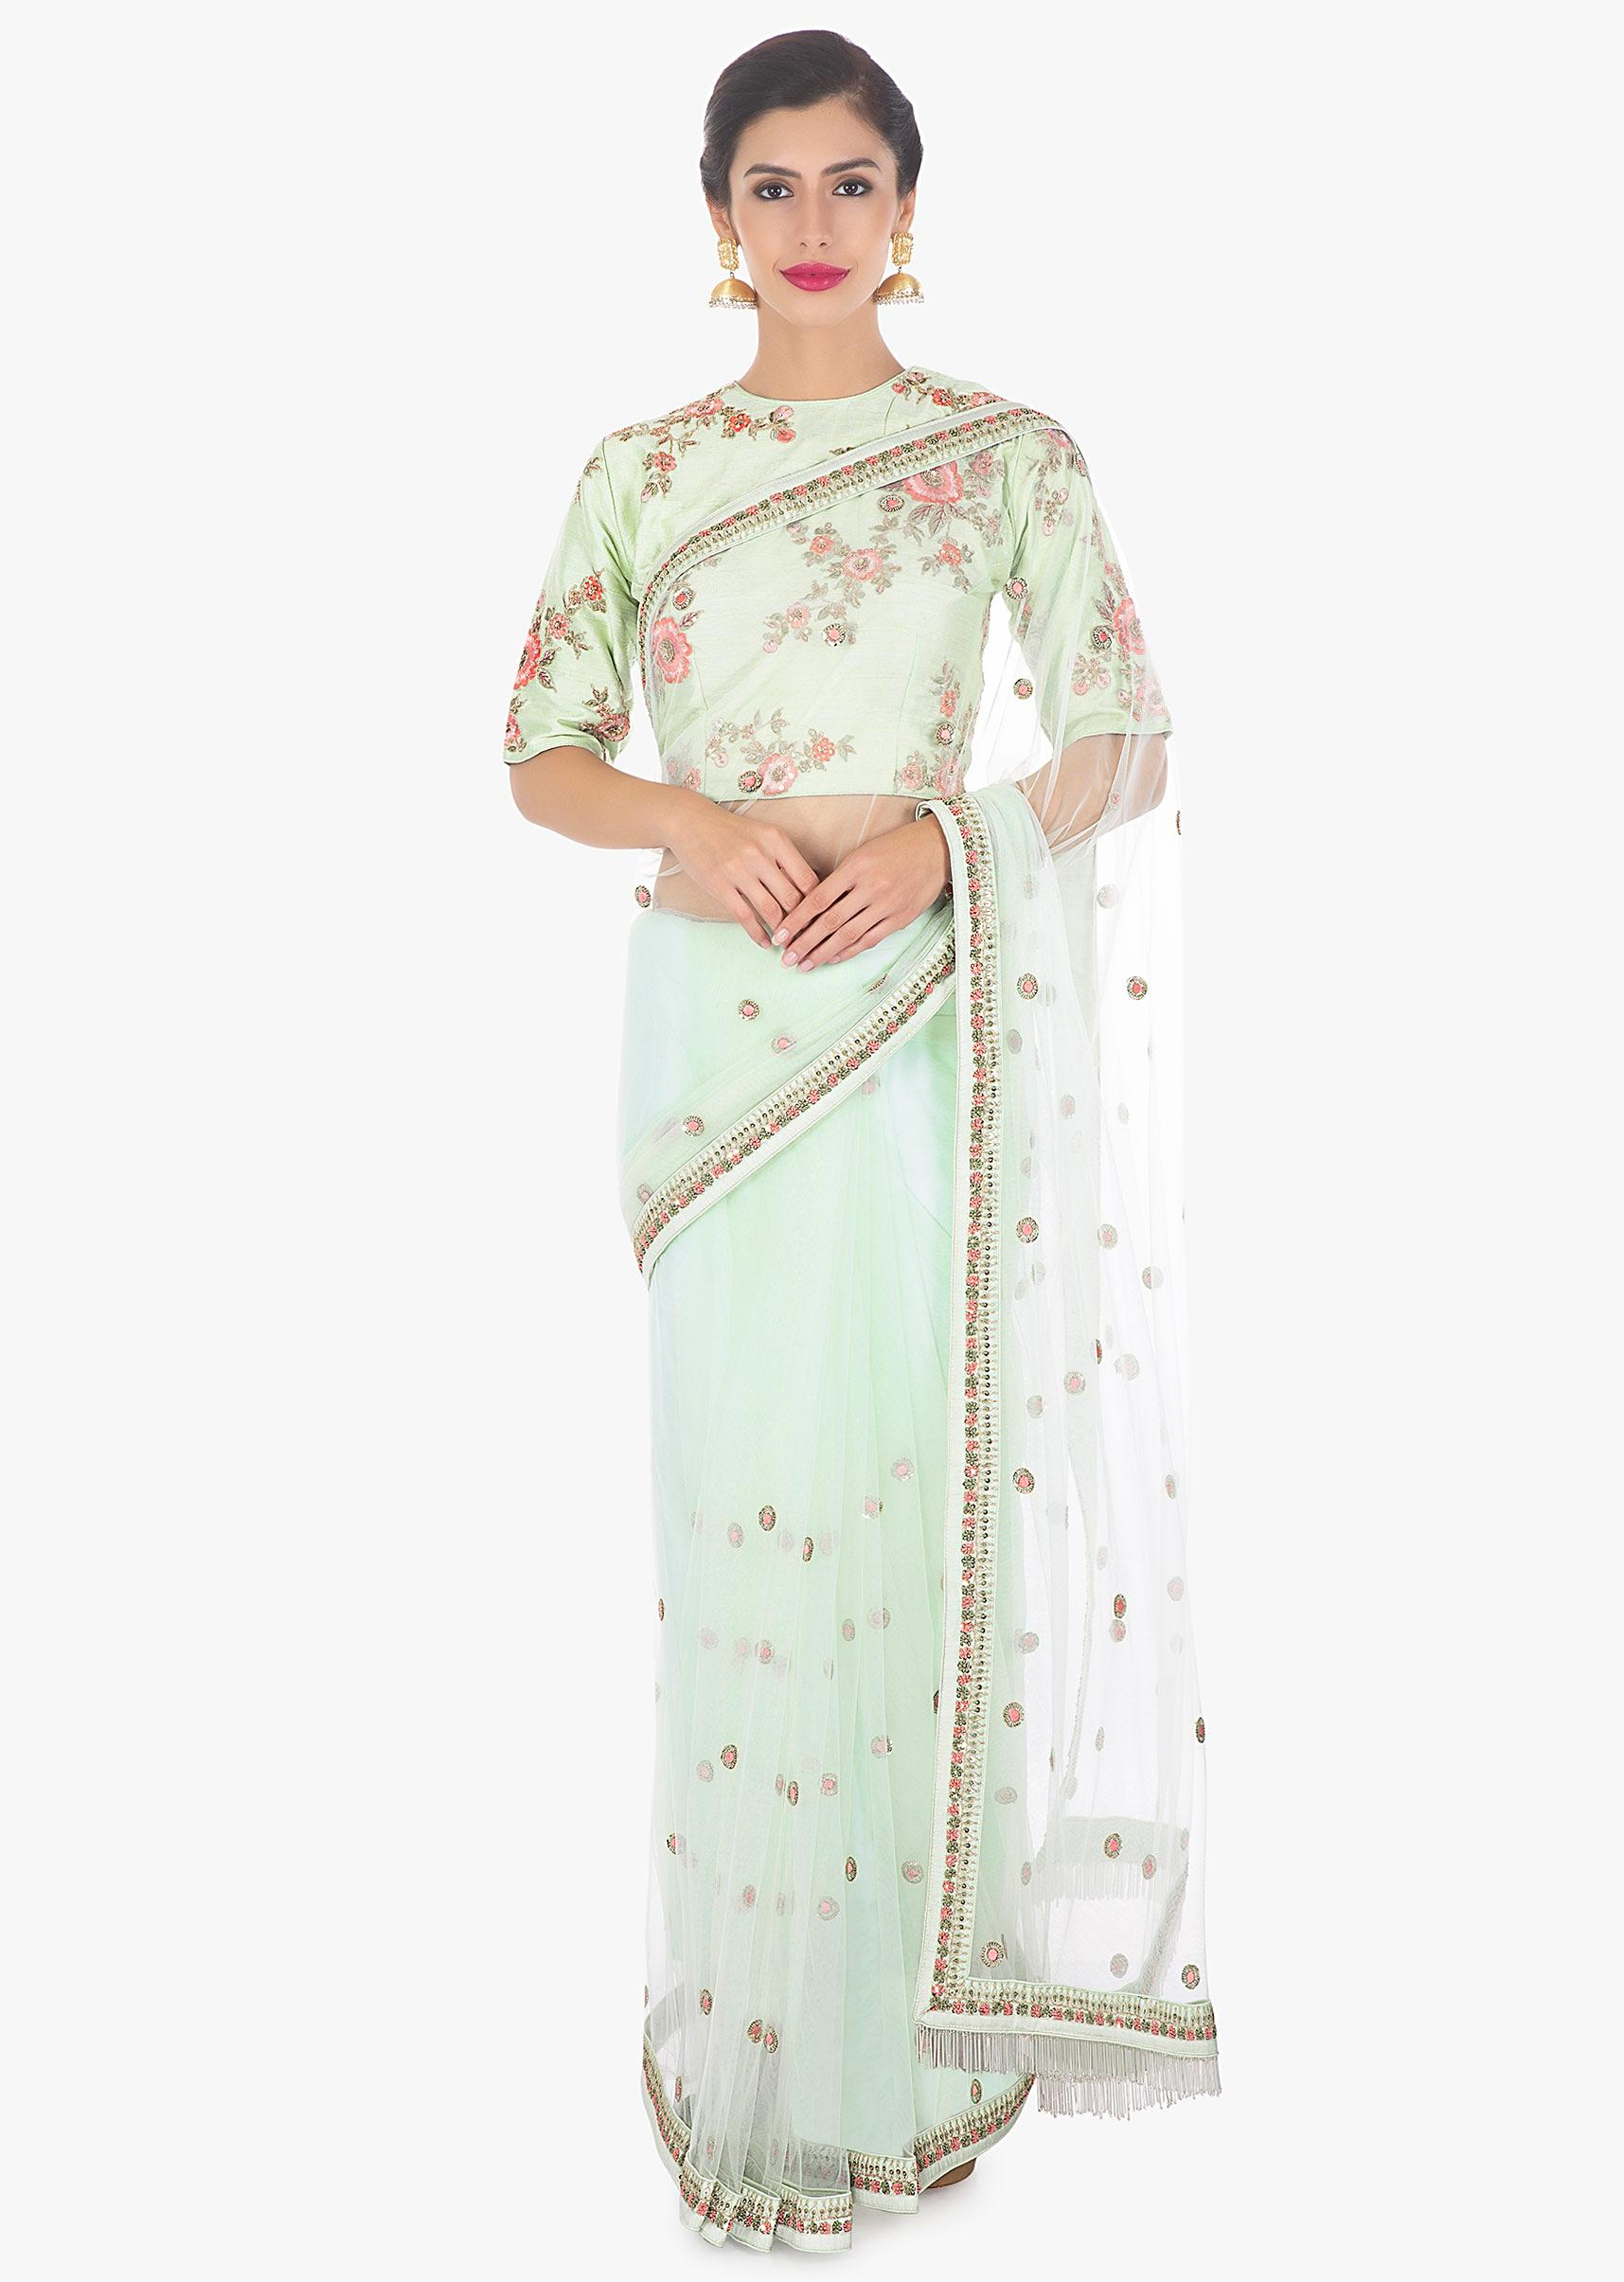 95959bb3191e3 Pistachio net saree paired with a matching raw silk blouse only on Kalki